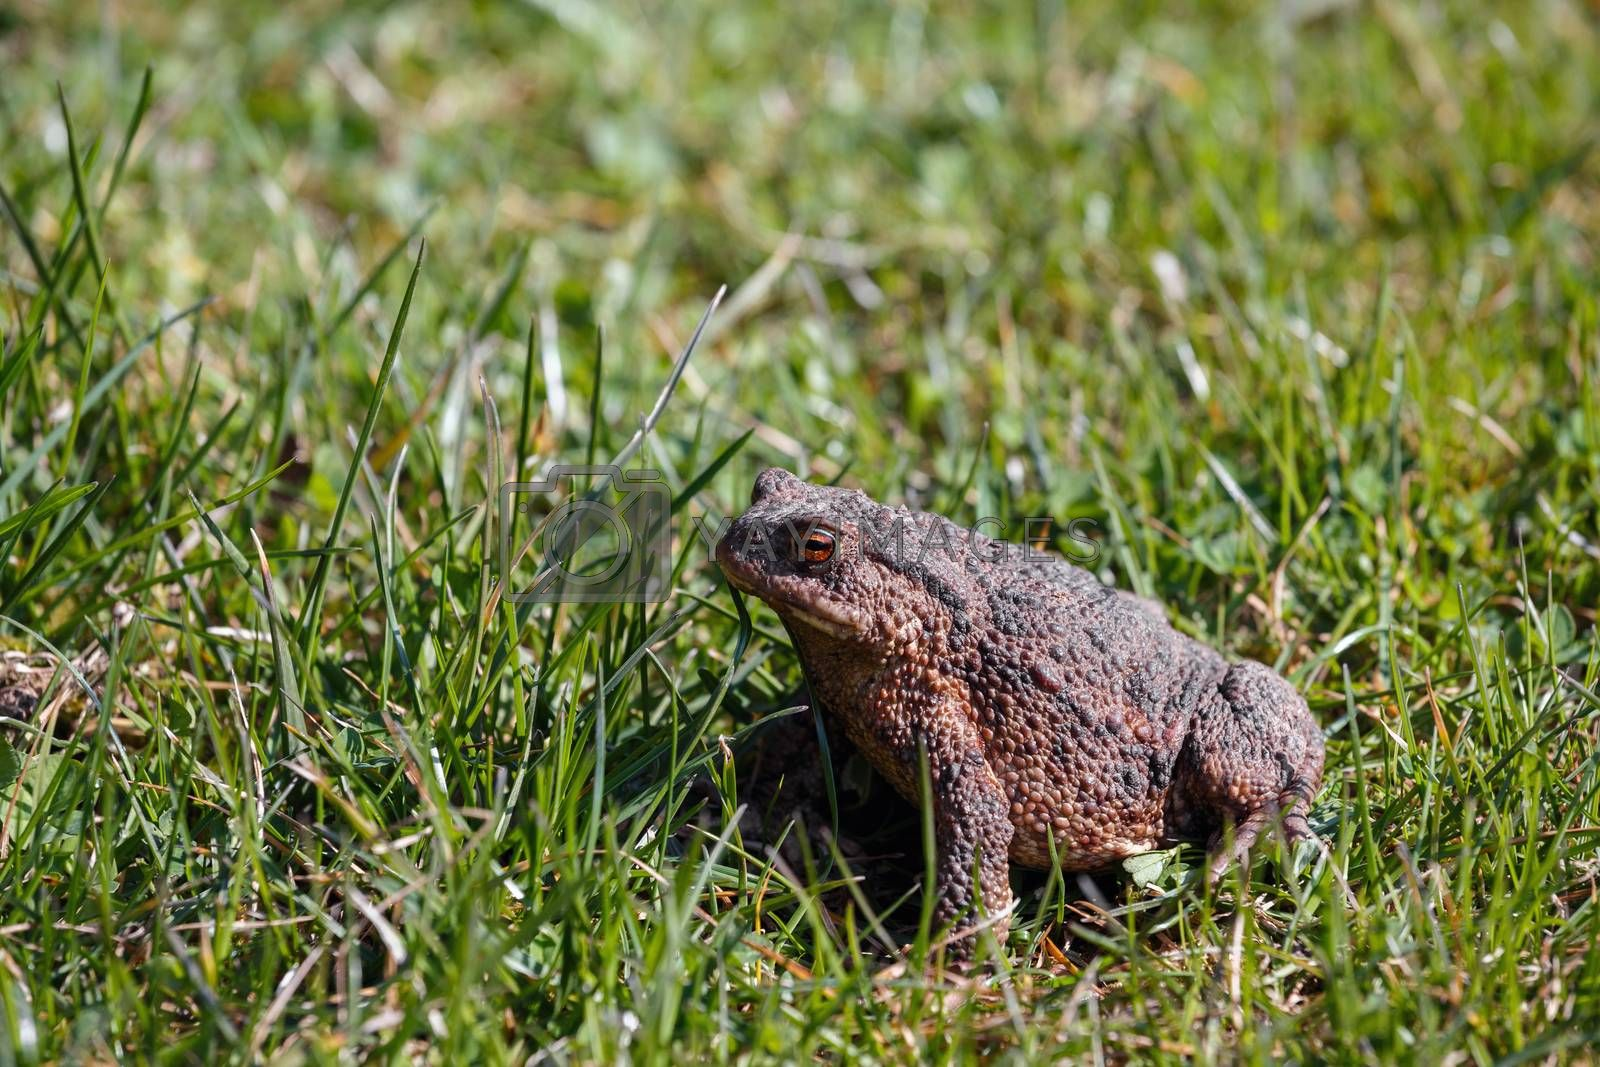 Royalty free image of brown toad in the garden by artush